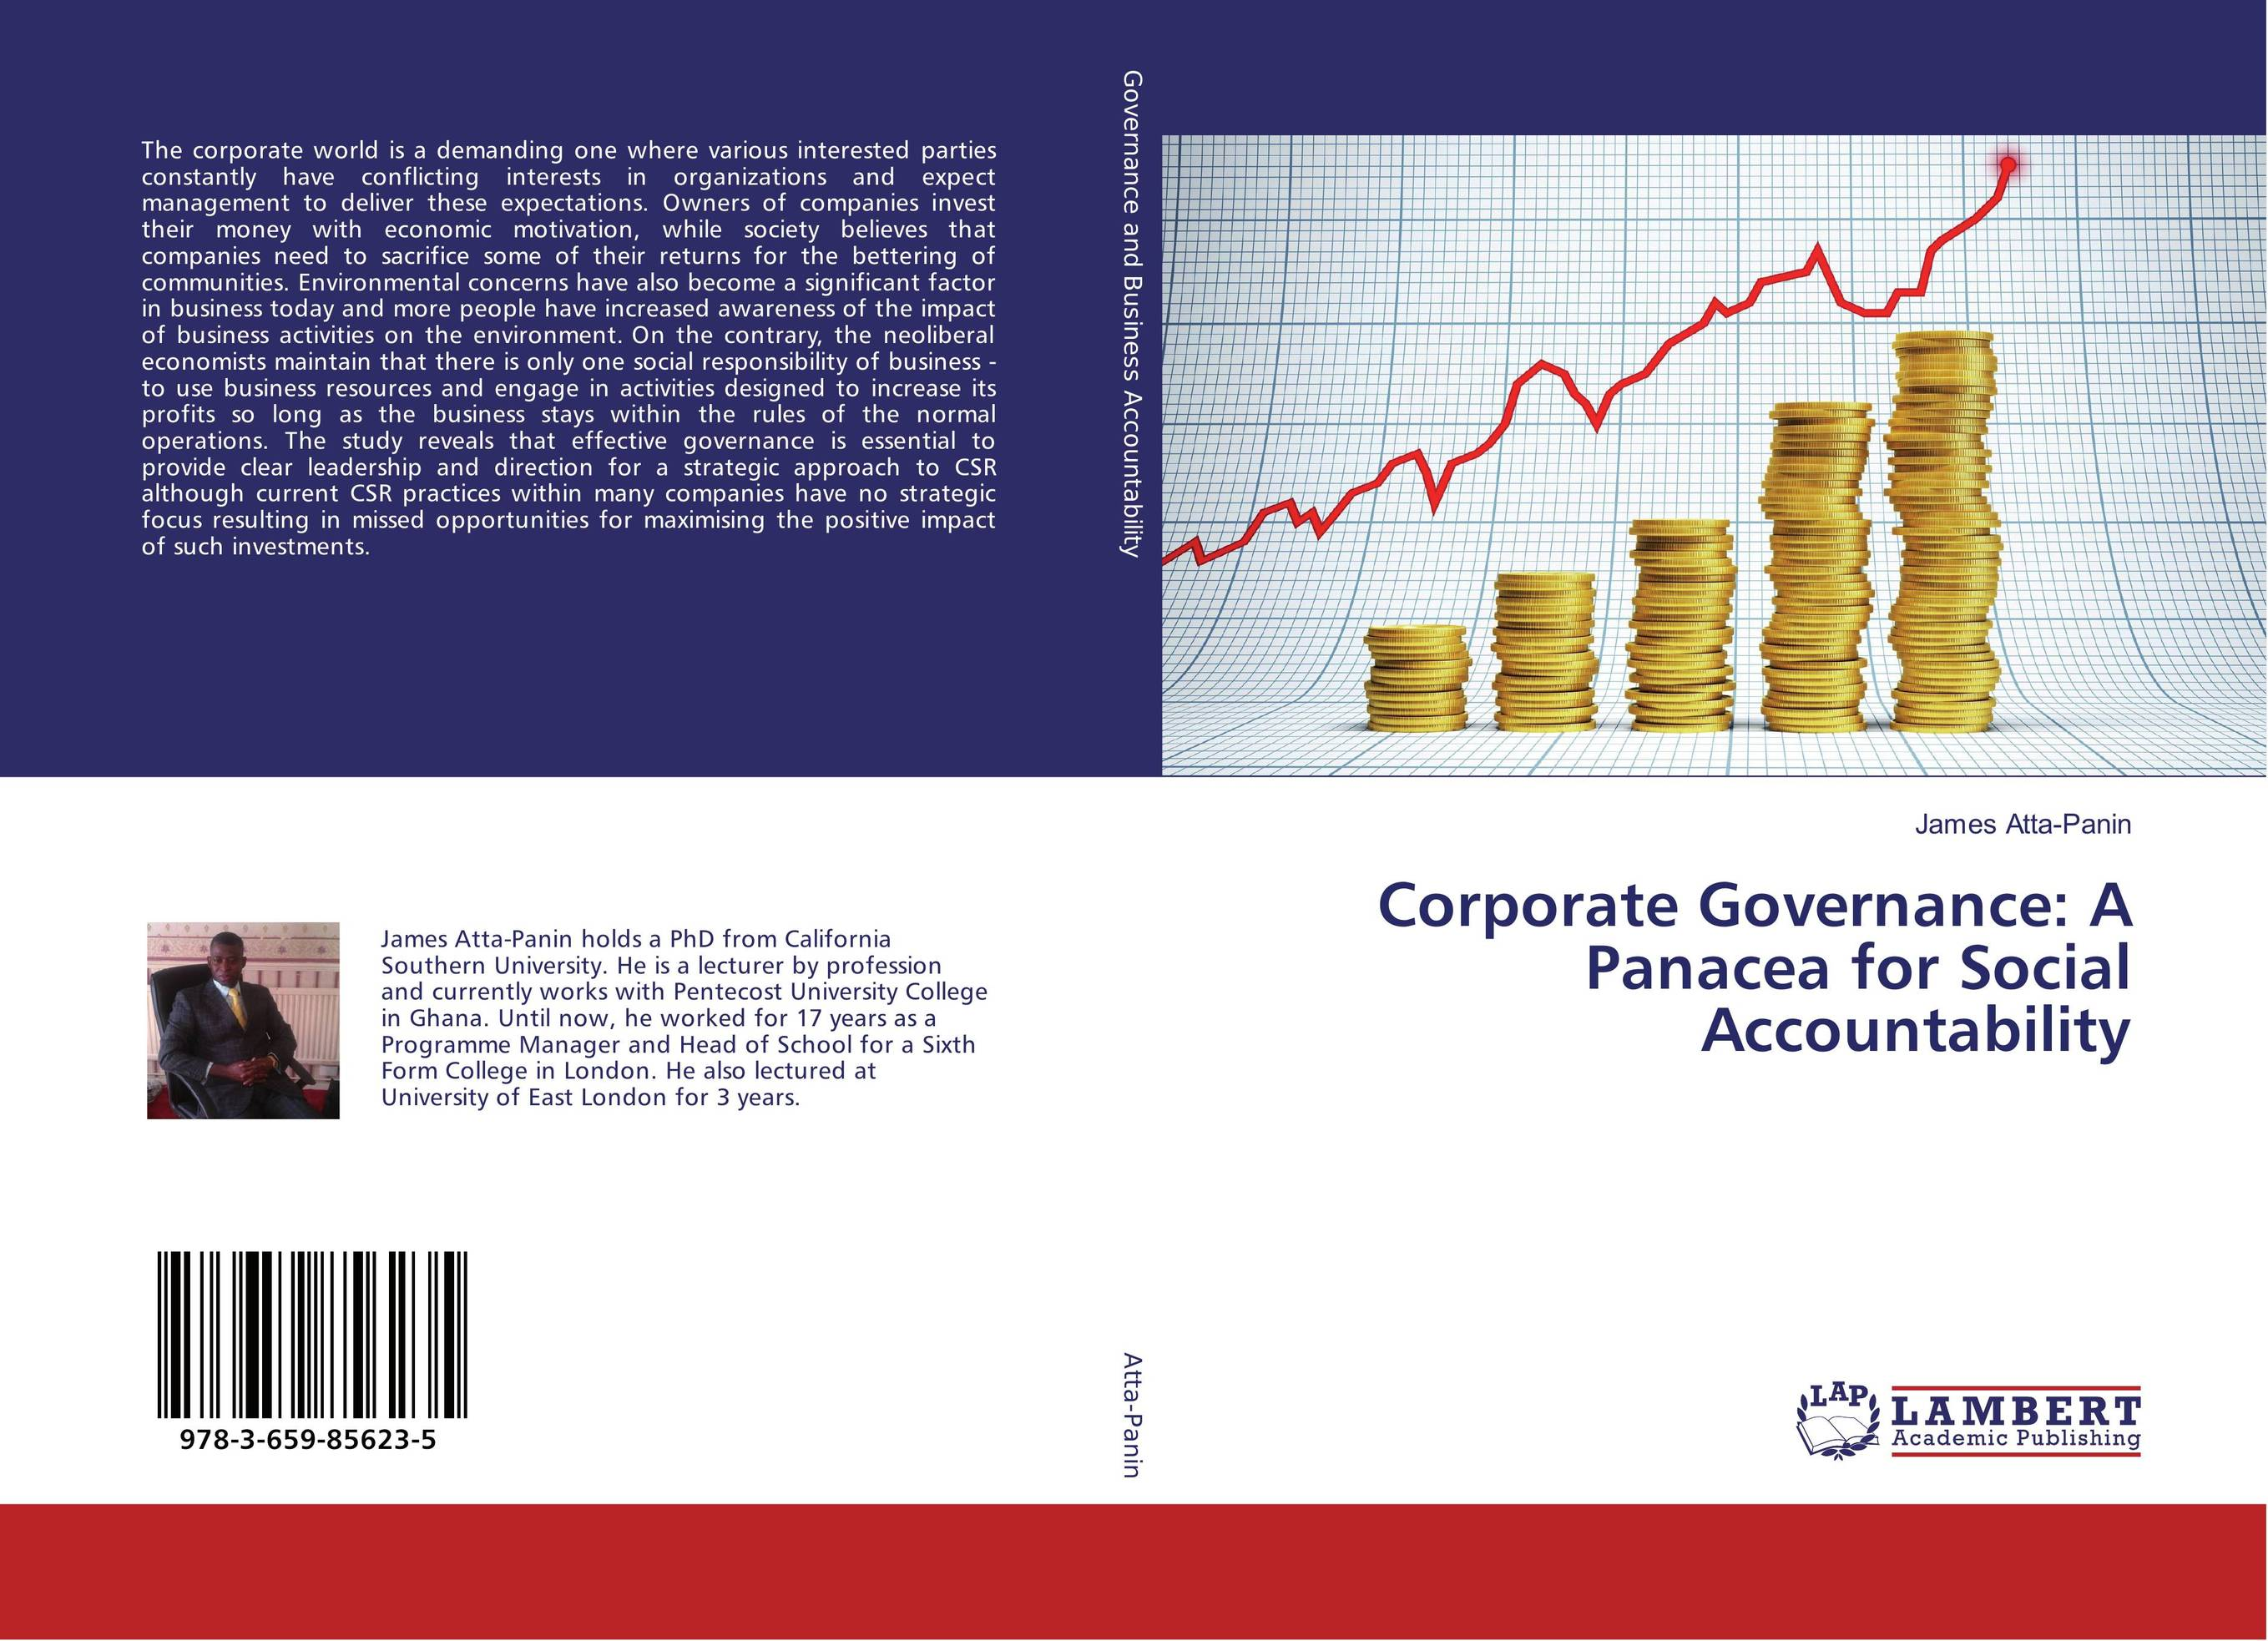 Corporate Governance: A Panacea for Social Accountability corporate governance and firm value